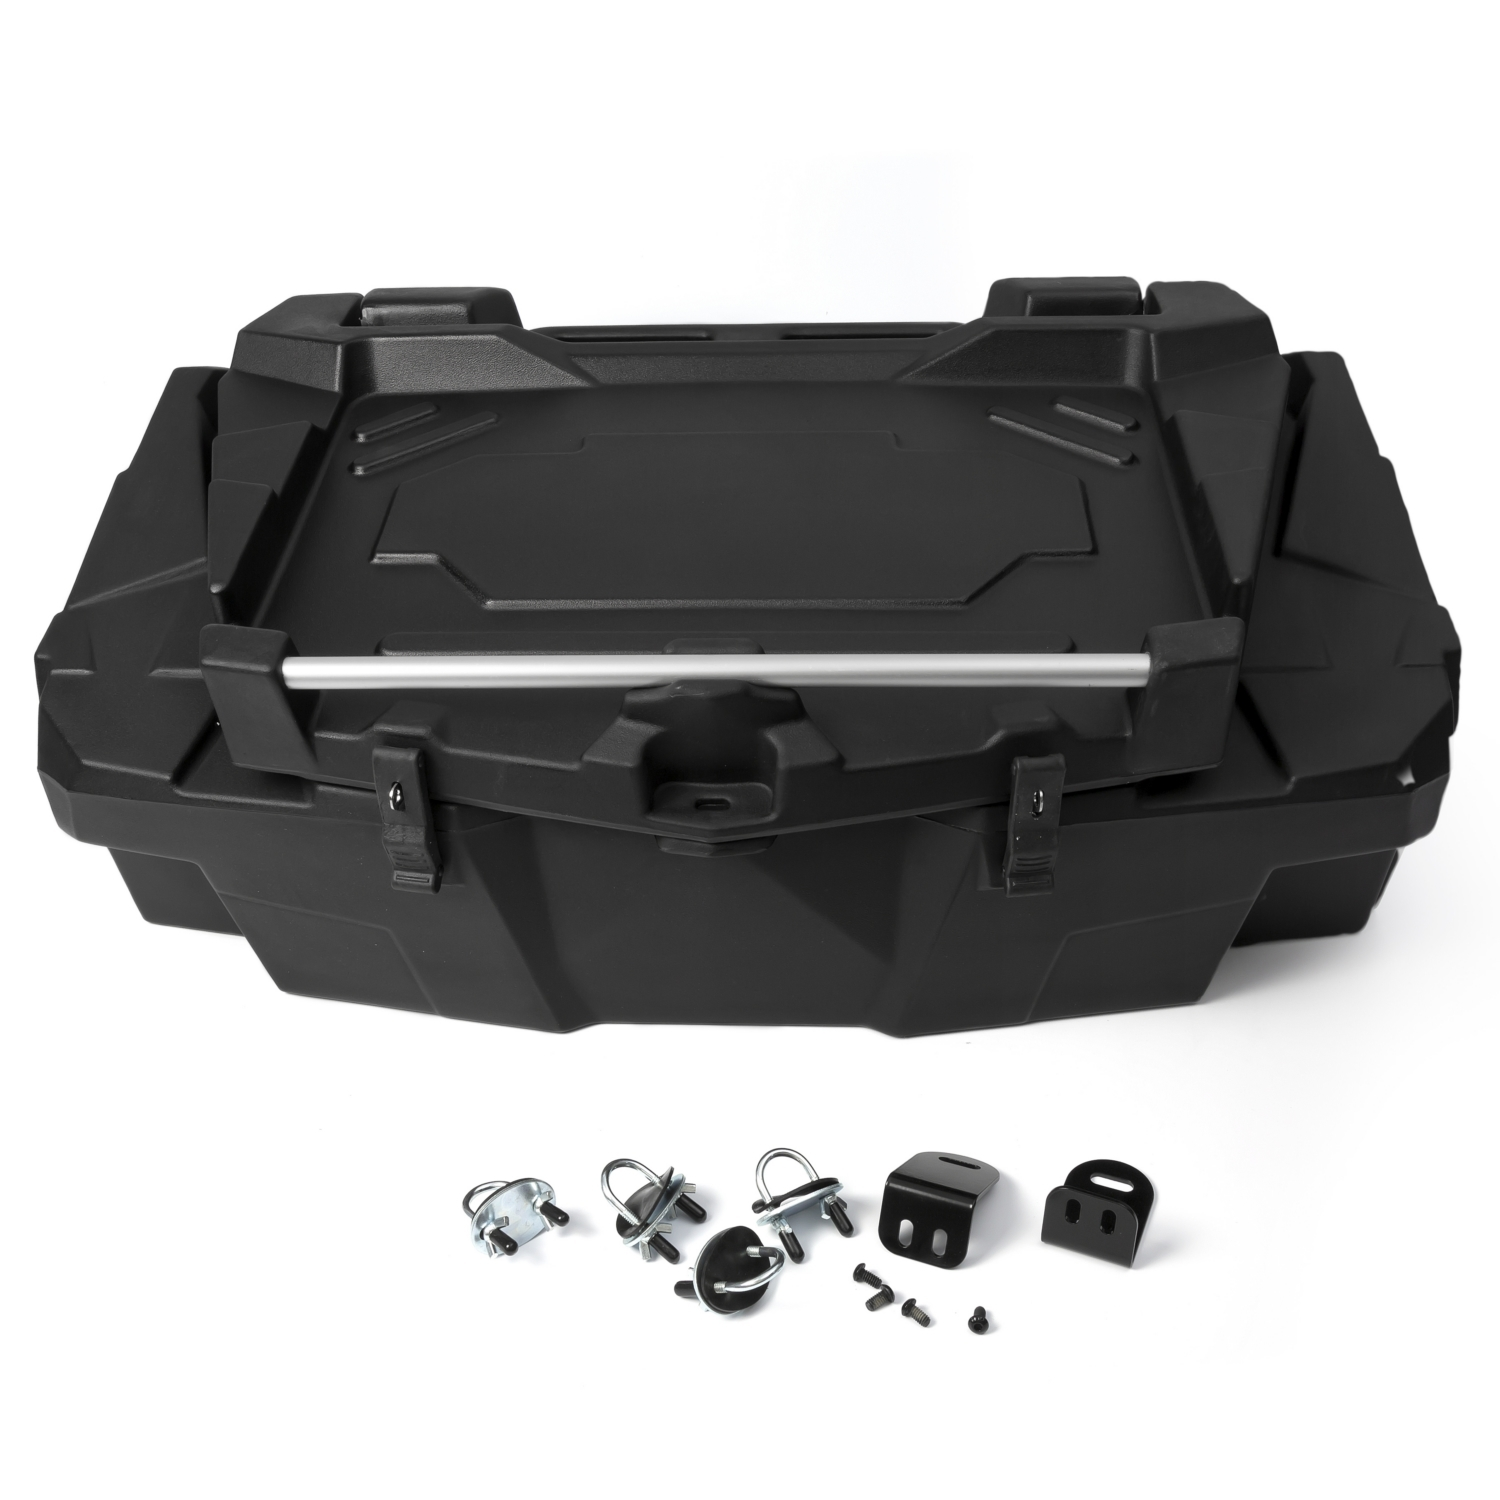 Kimpex 360006 UTV 175L BOX REAR